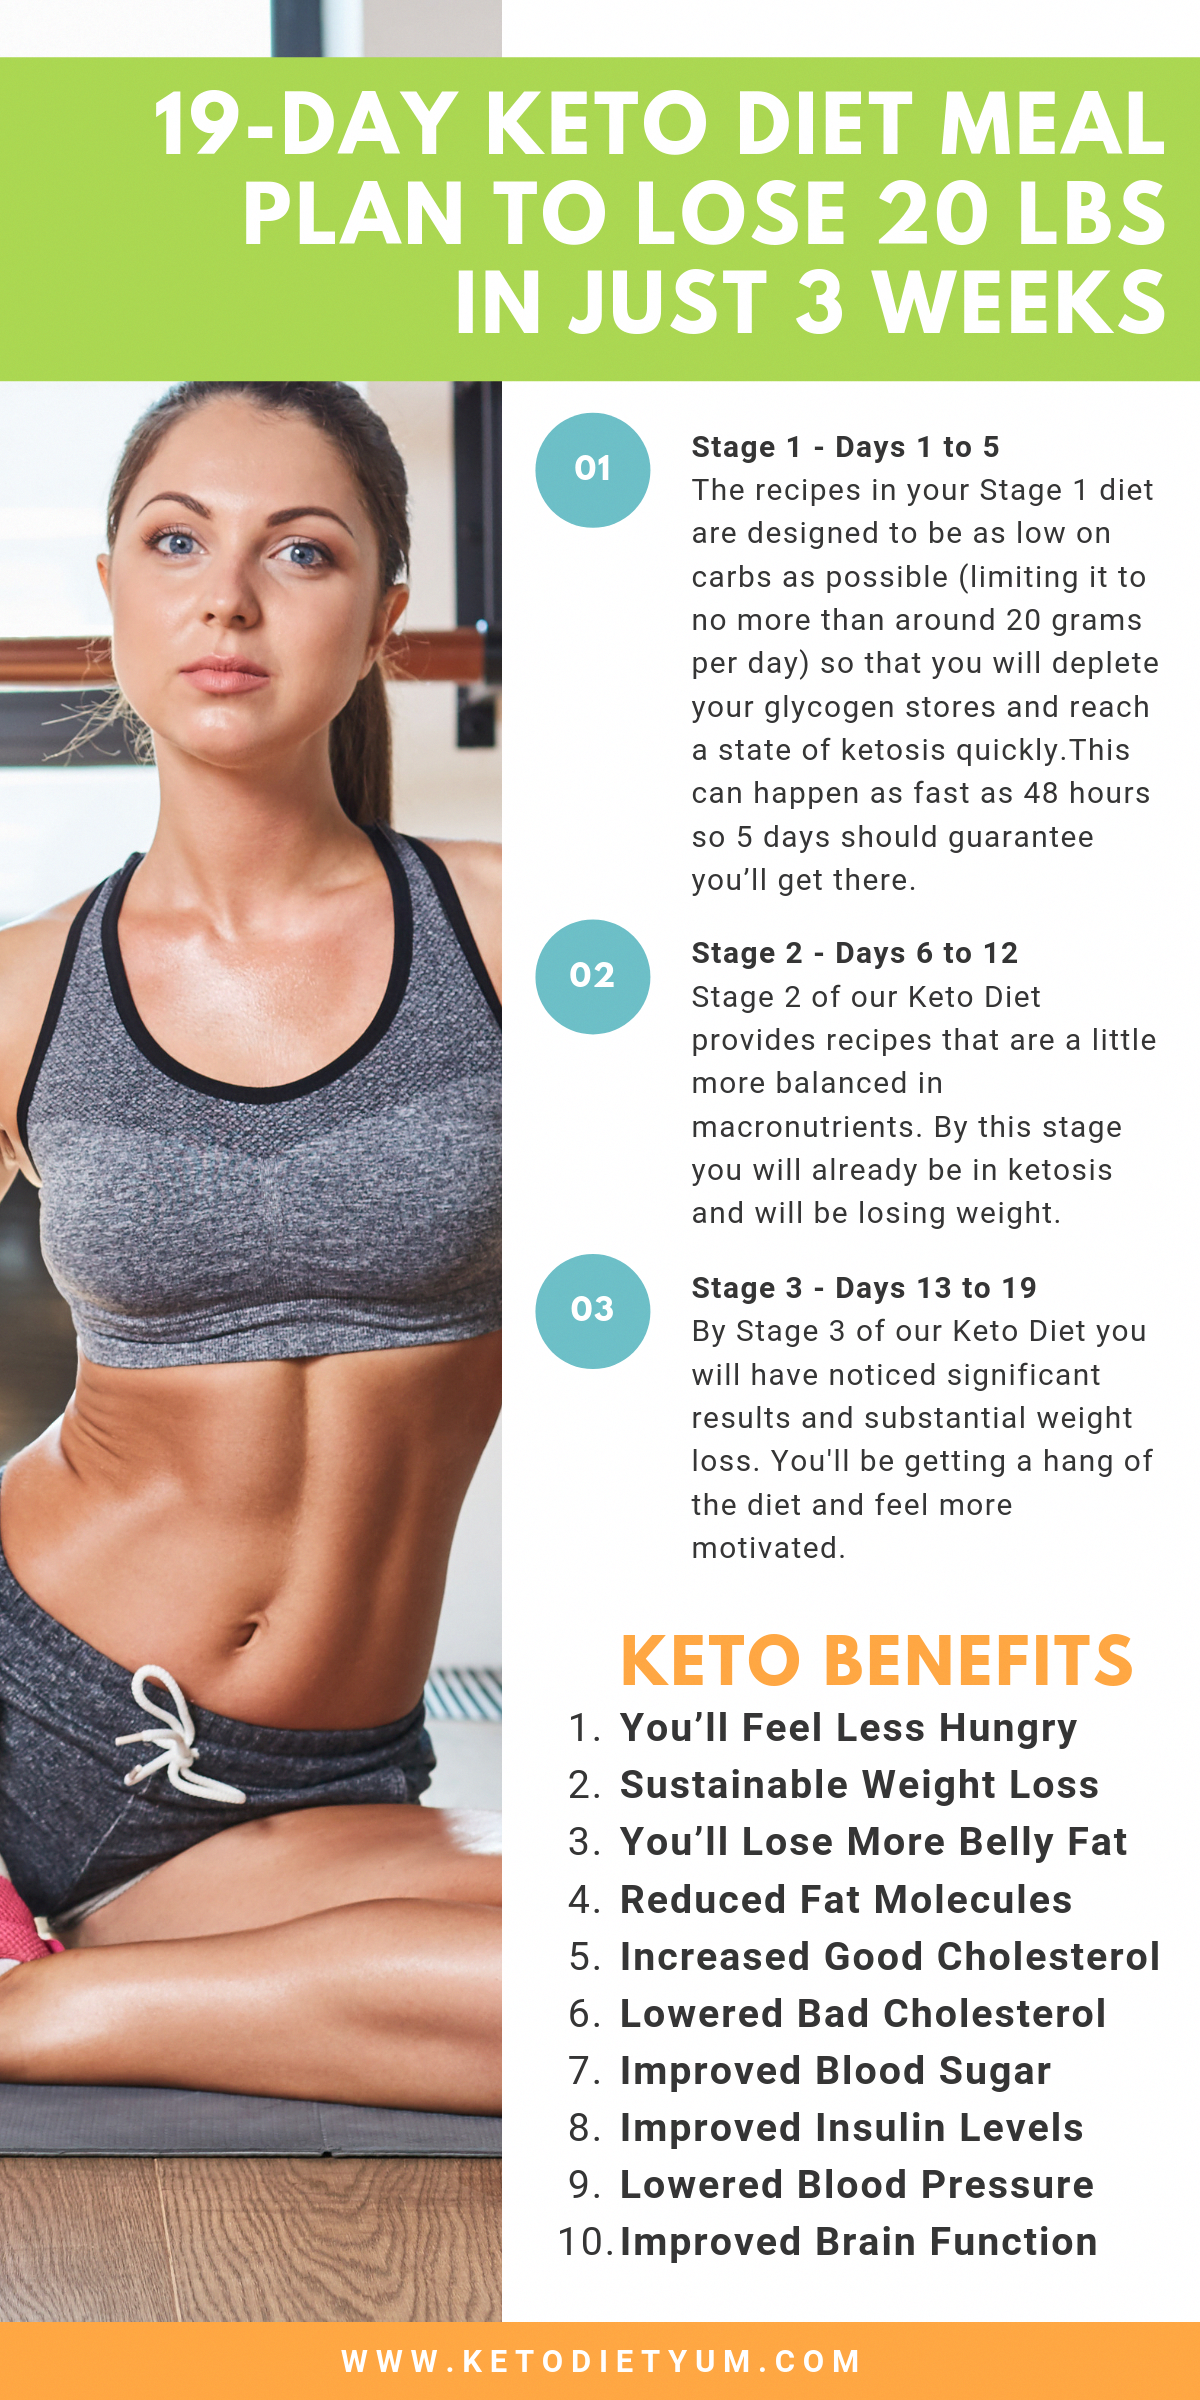 how to lose more weight on keto diet